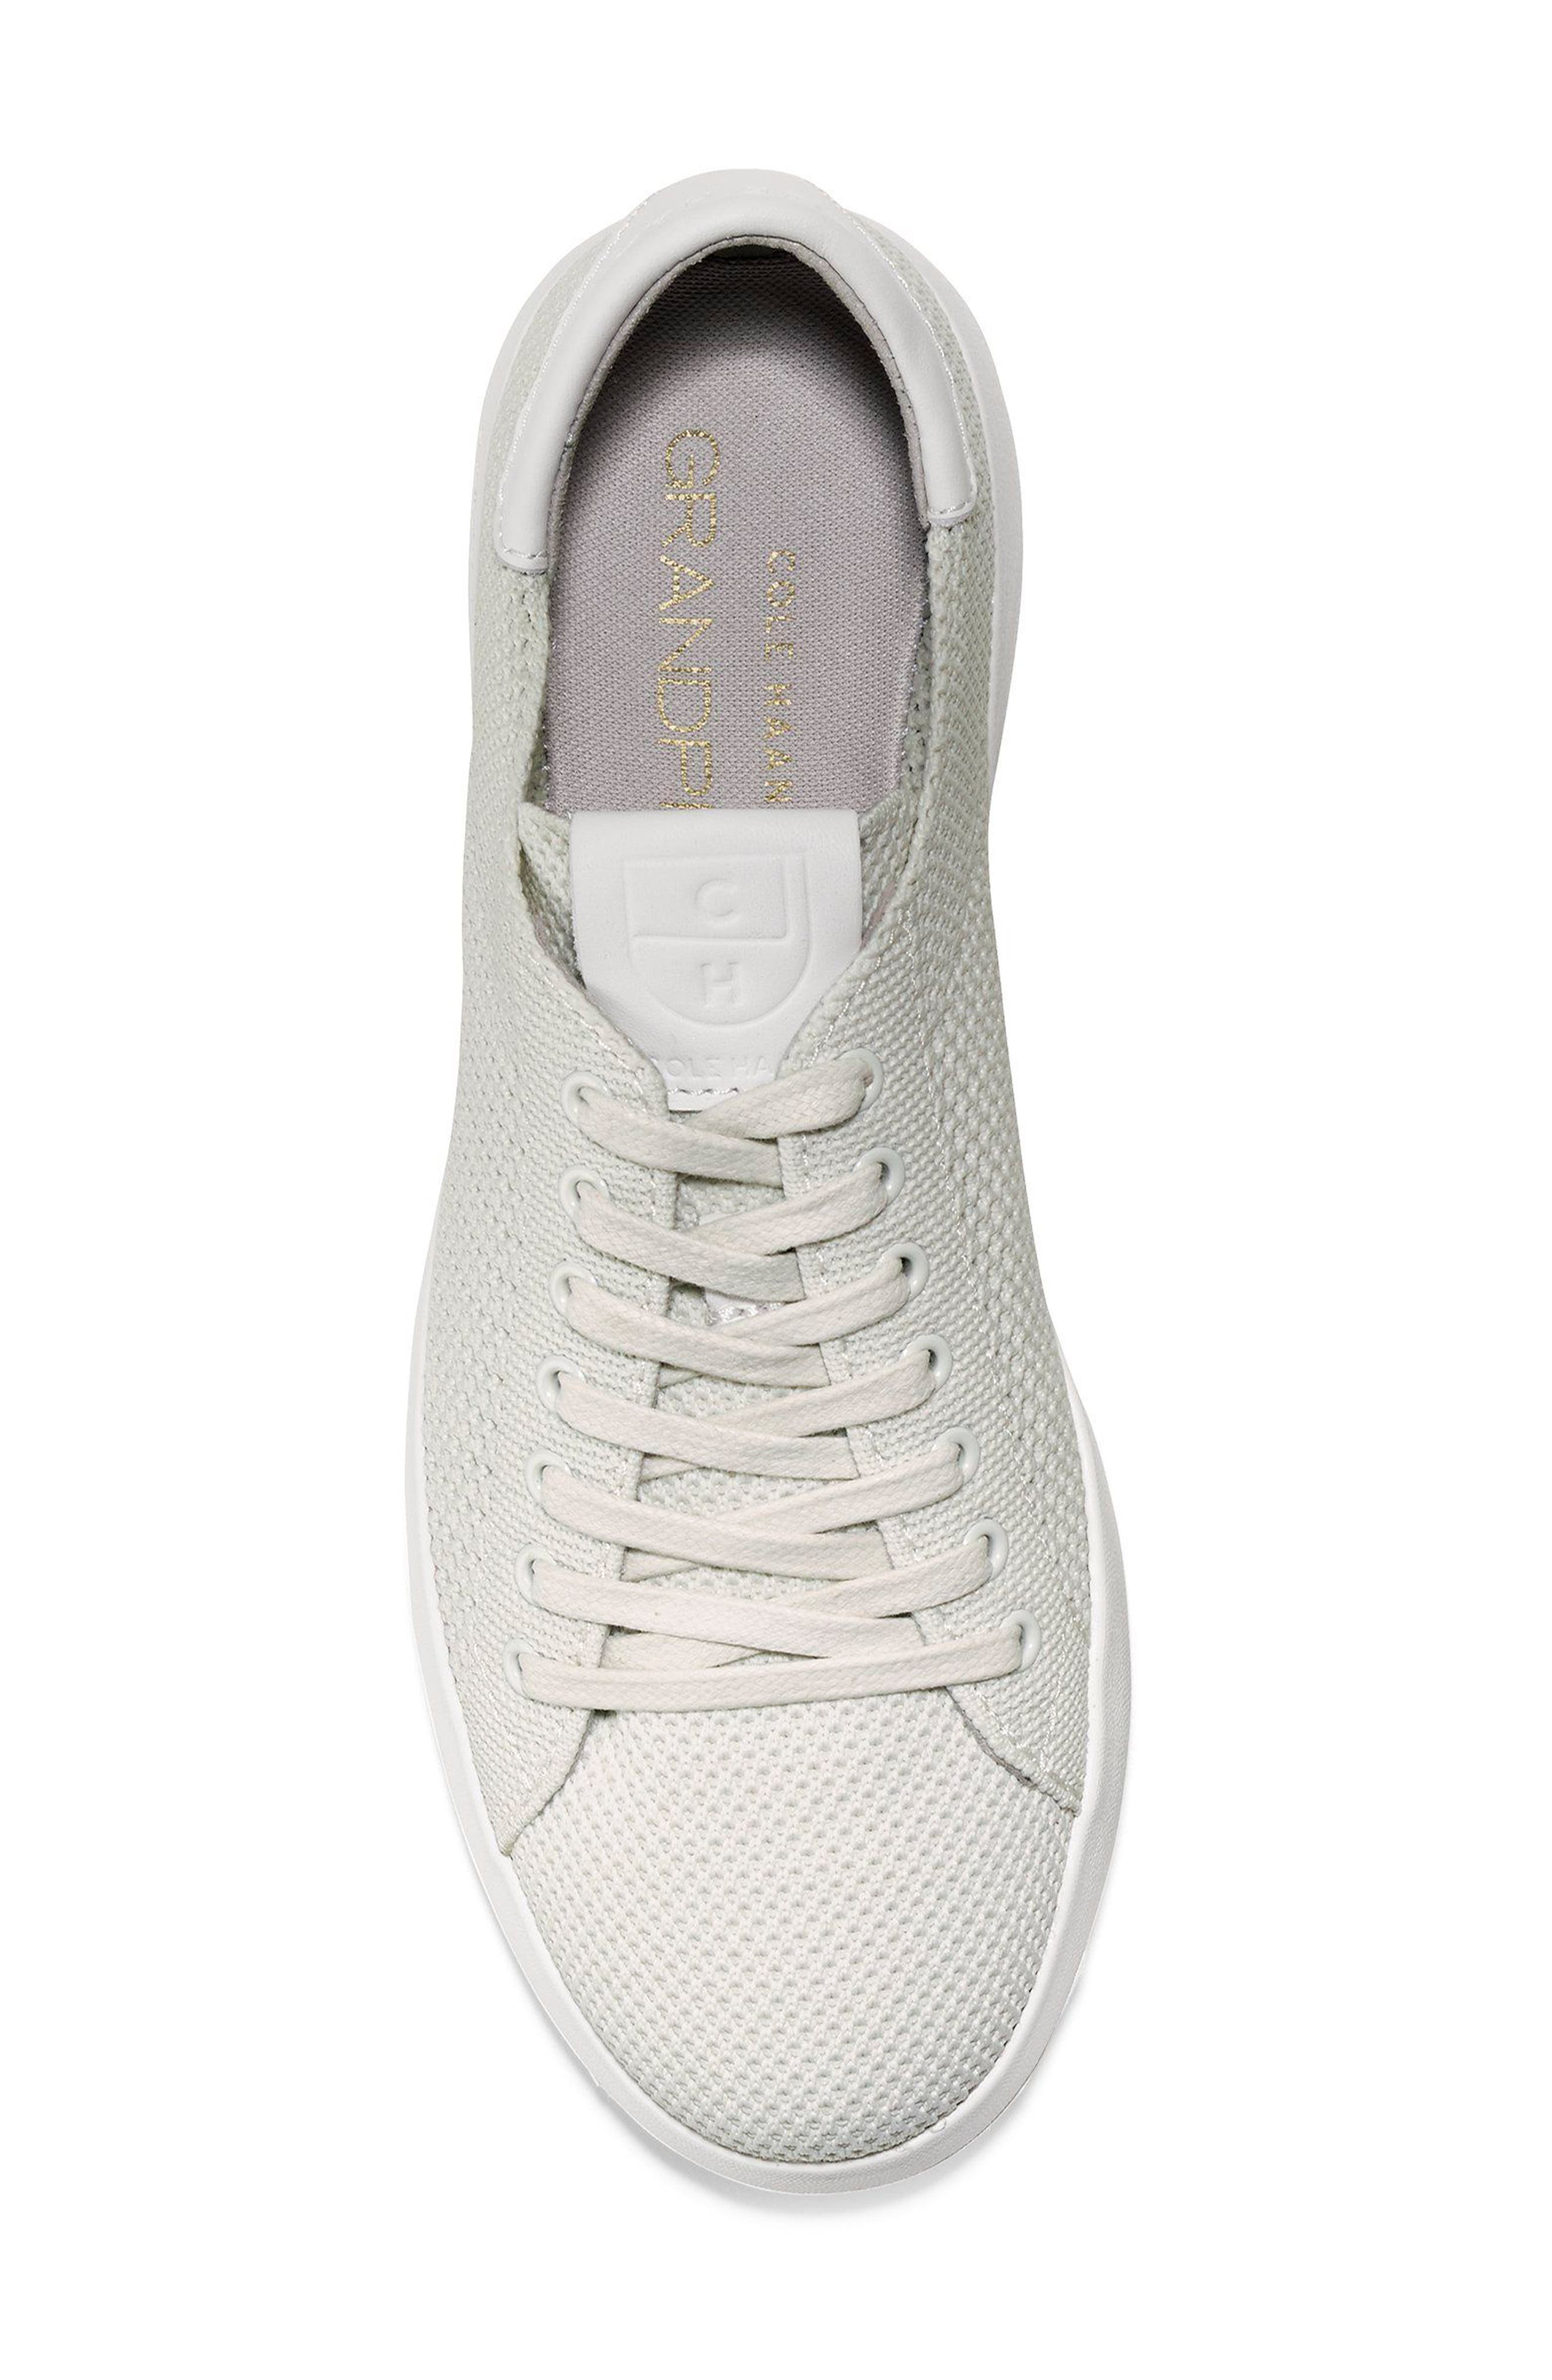 COLE HAAN, GrandPro Stitchlite Sneaker, Alternate thumbnail 5, color, CHALK FABRIC